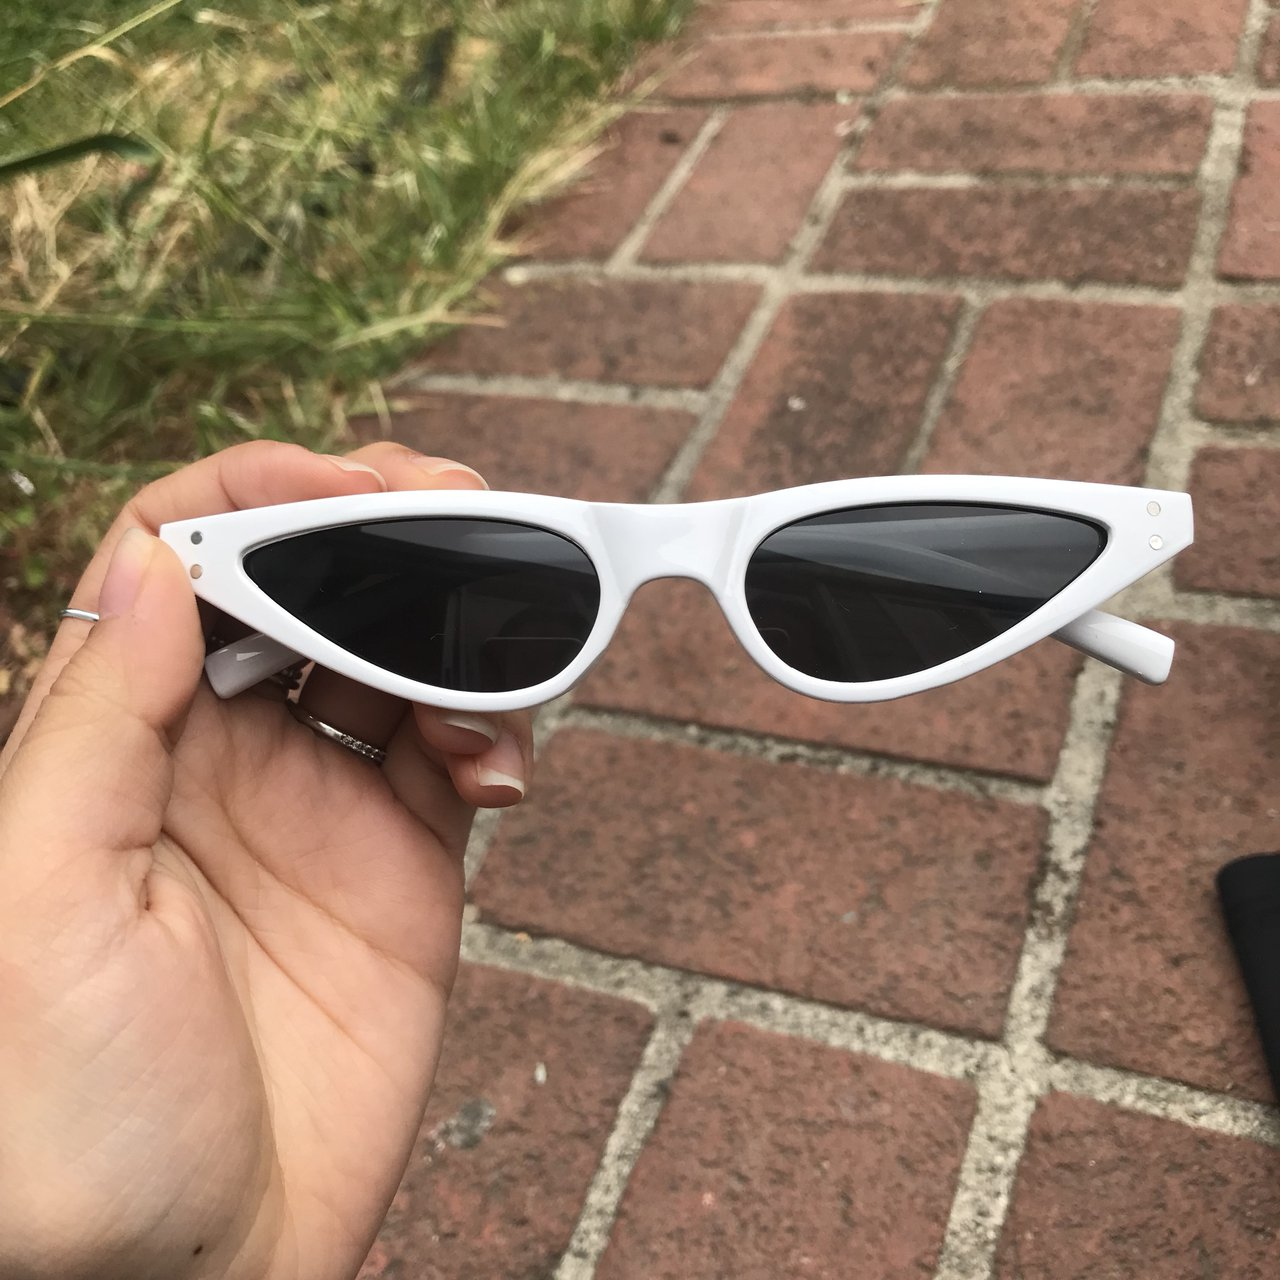 480f6eef0e5 Cateye Sunglasses in White White frames with black lenses.   - Depop